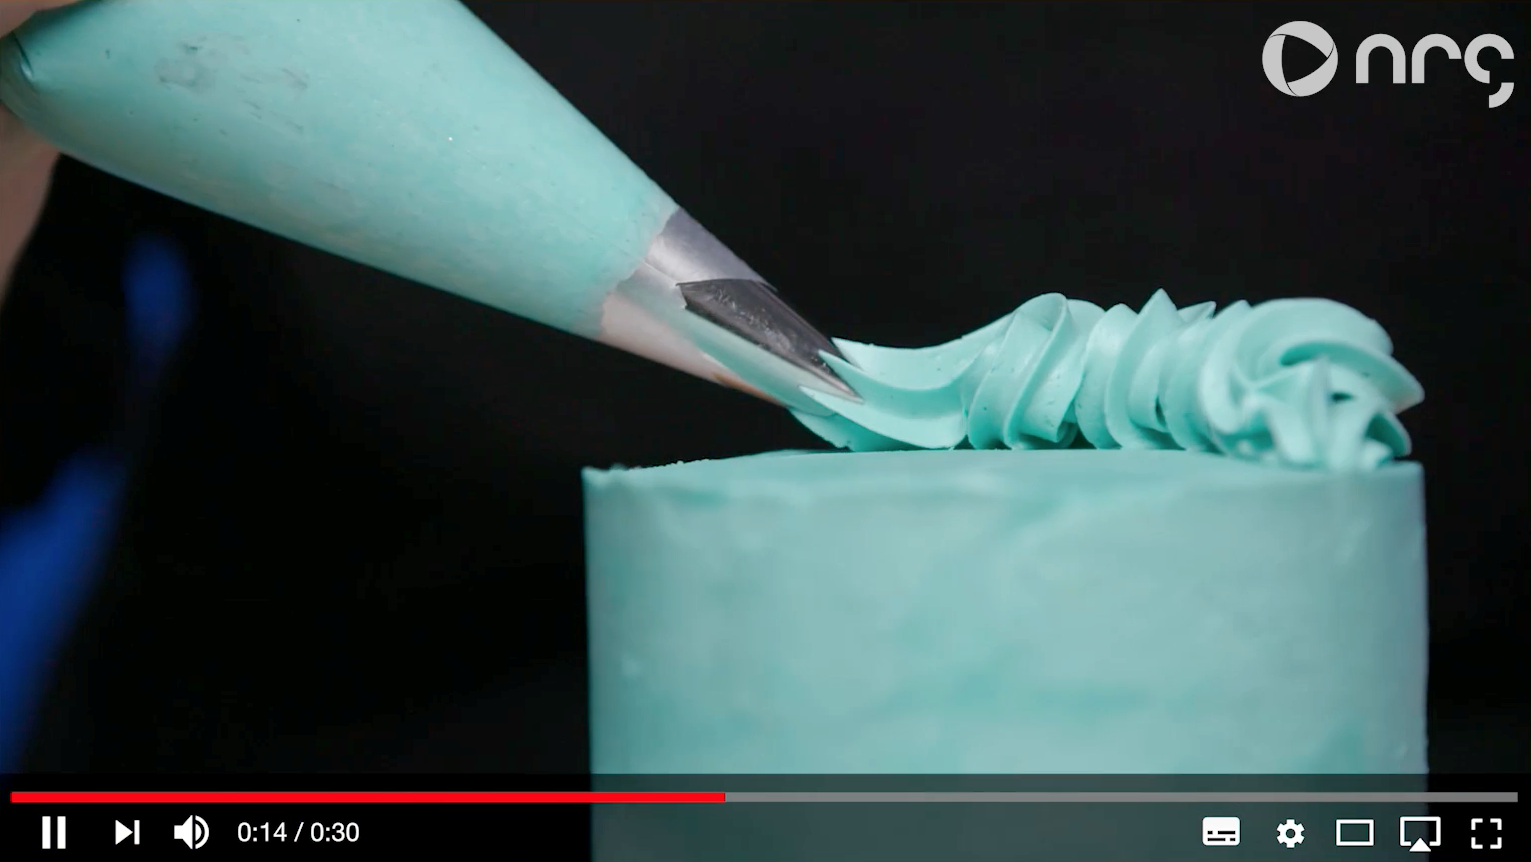 image of a cake to support video about how video content is produced